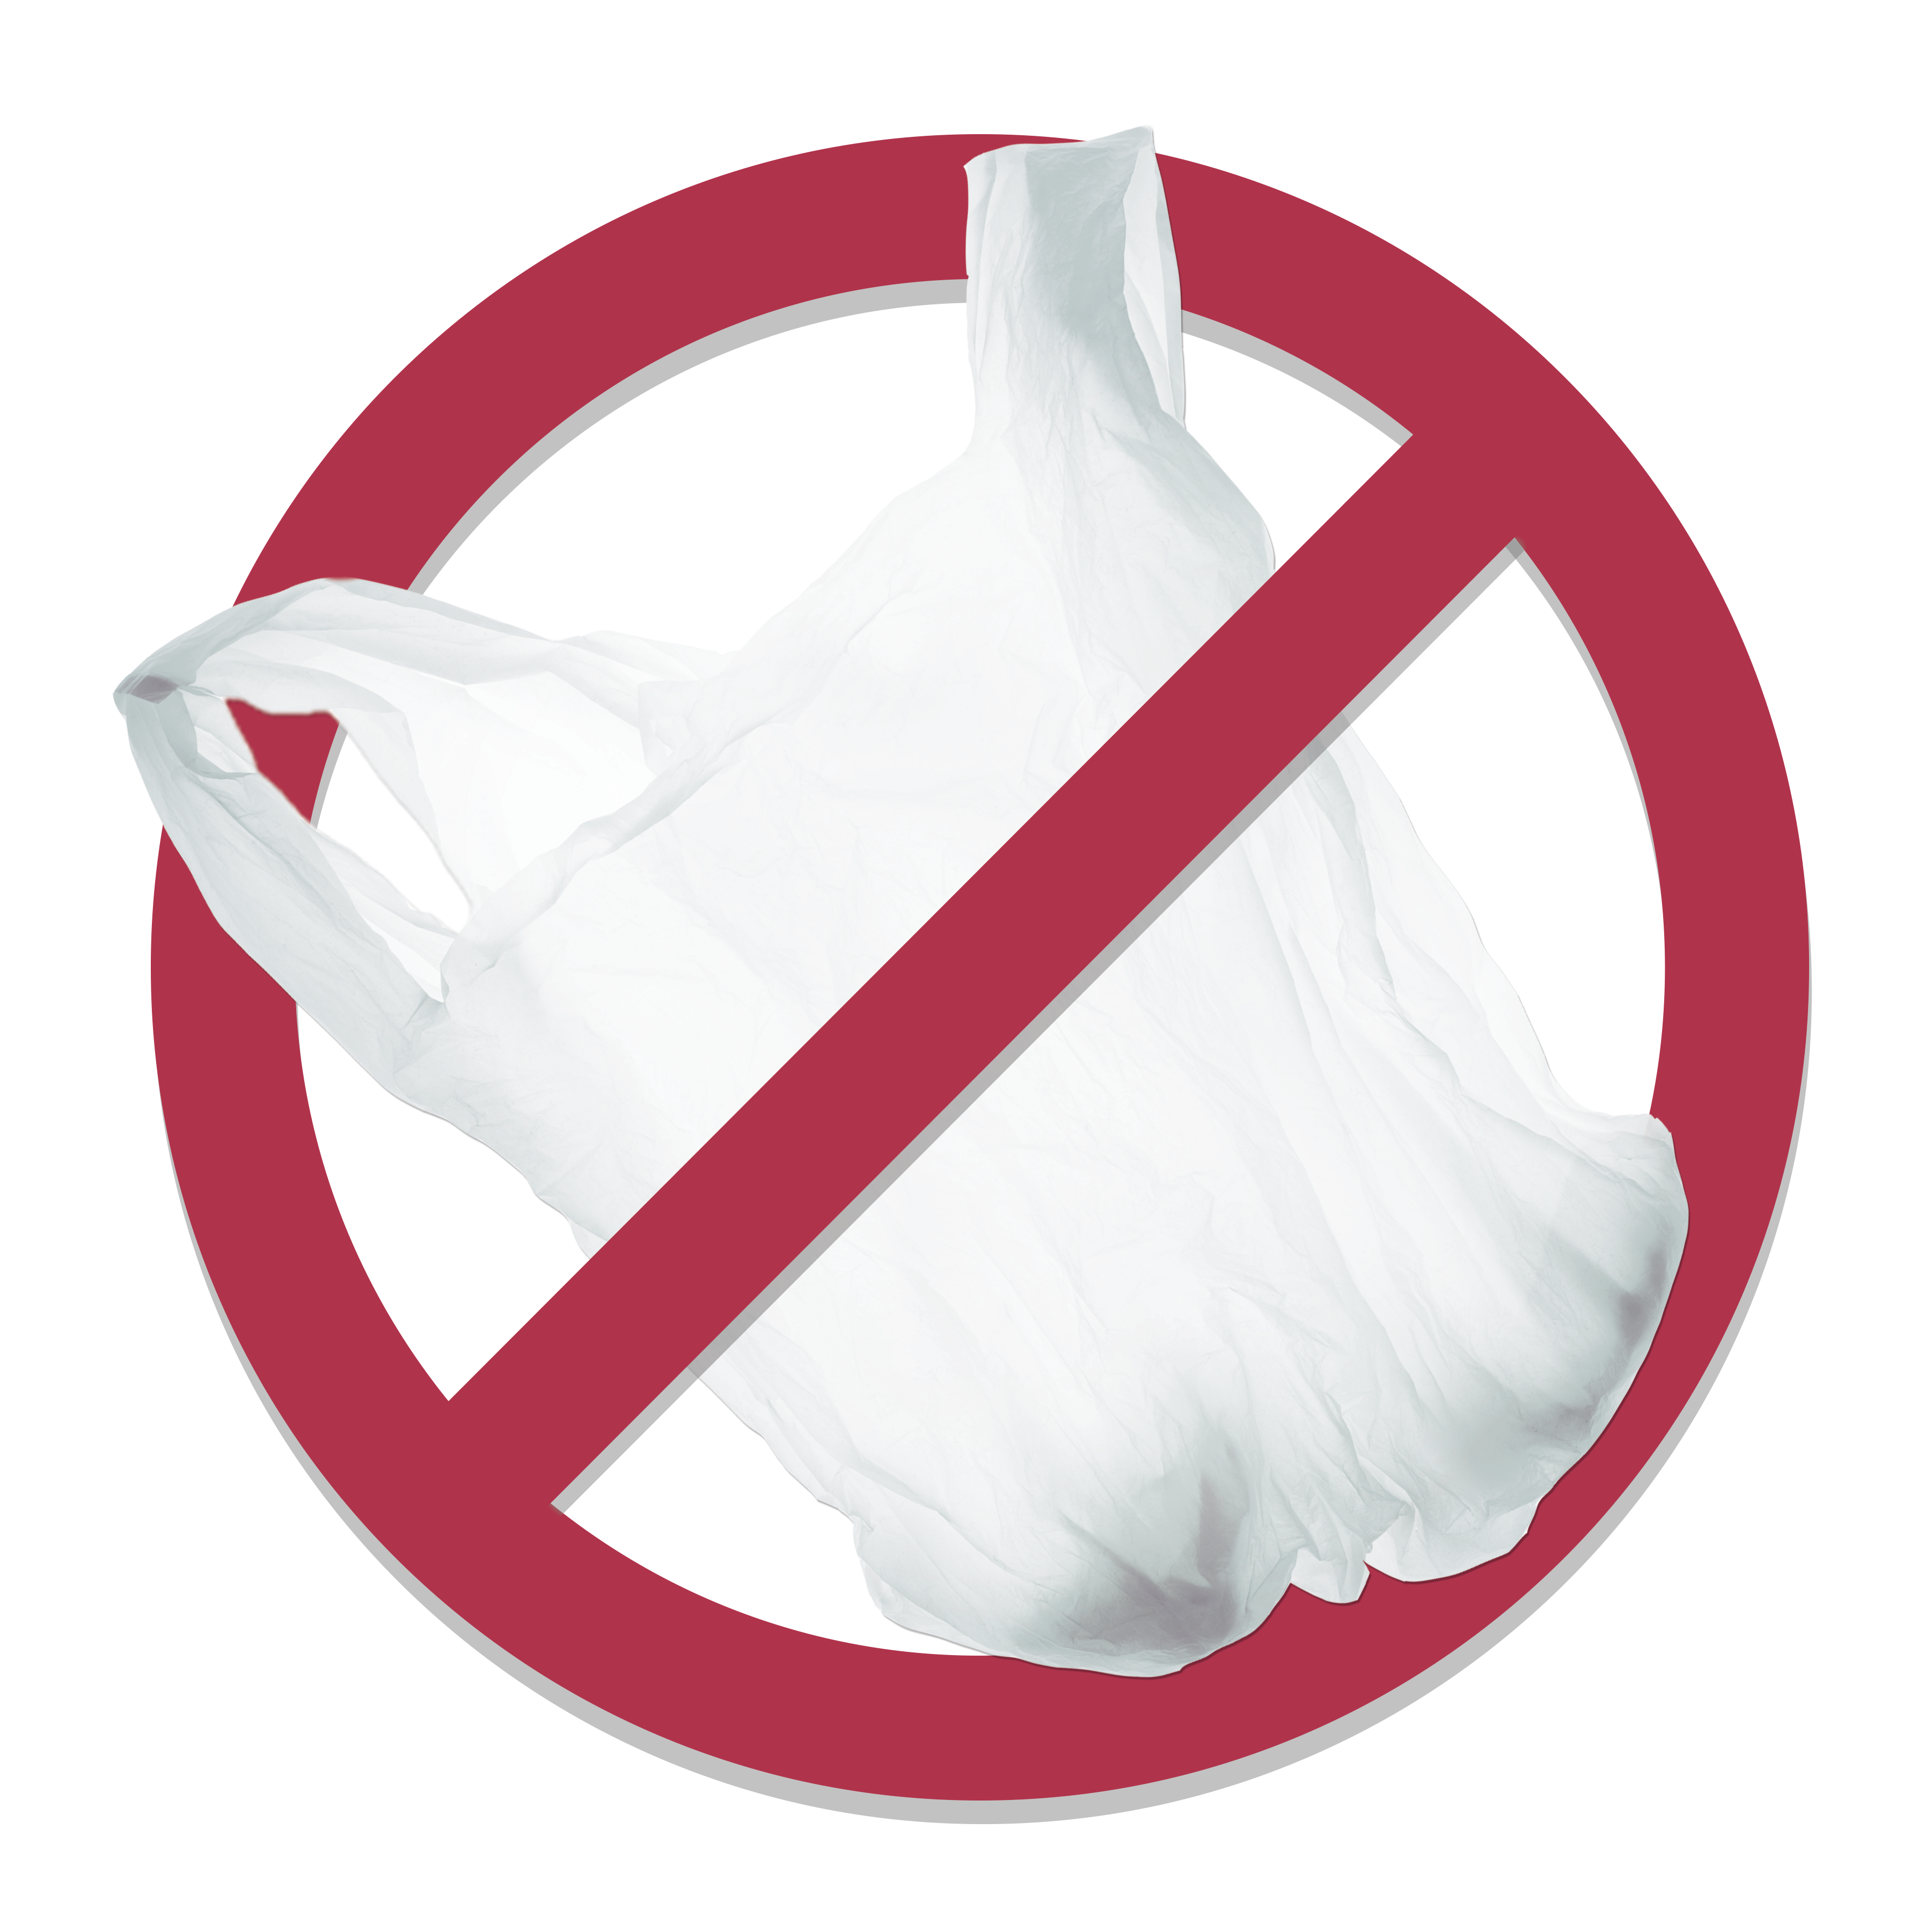 Plastic bags are creating a huge problem. Skip the plastic bags to improve recycling!